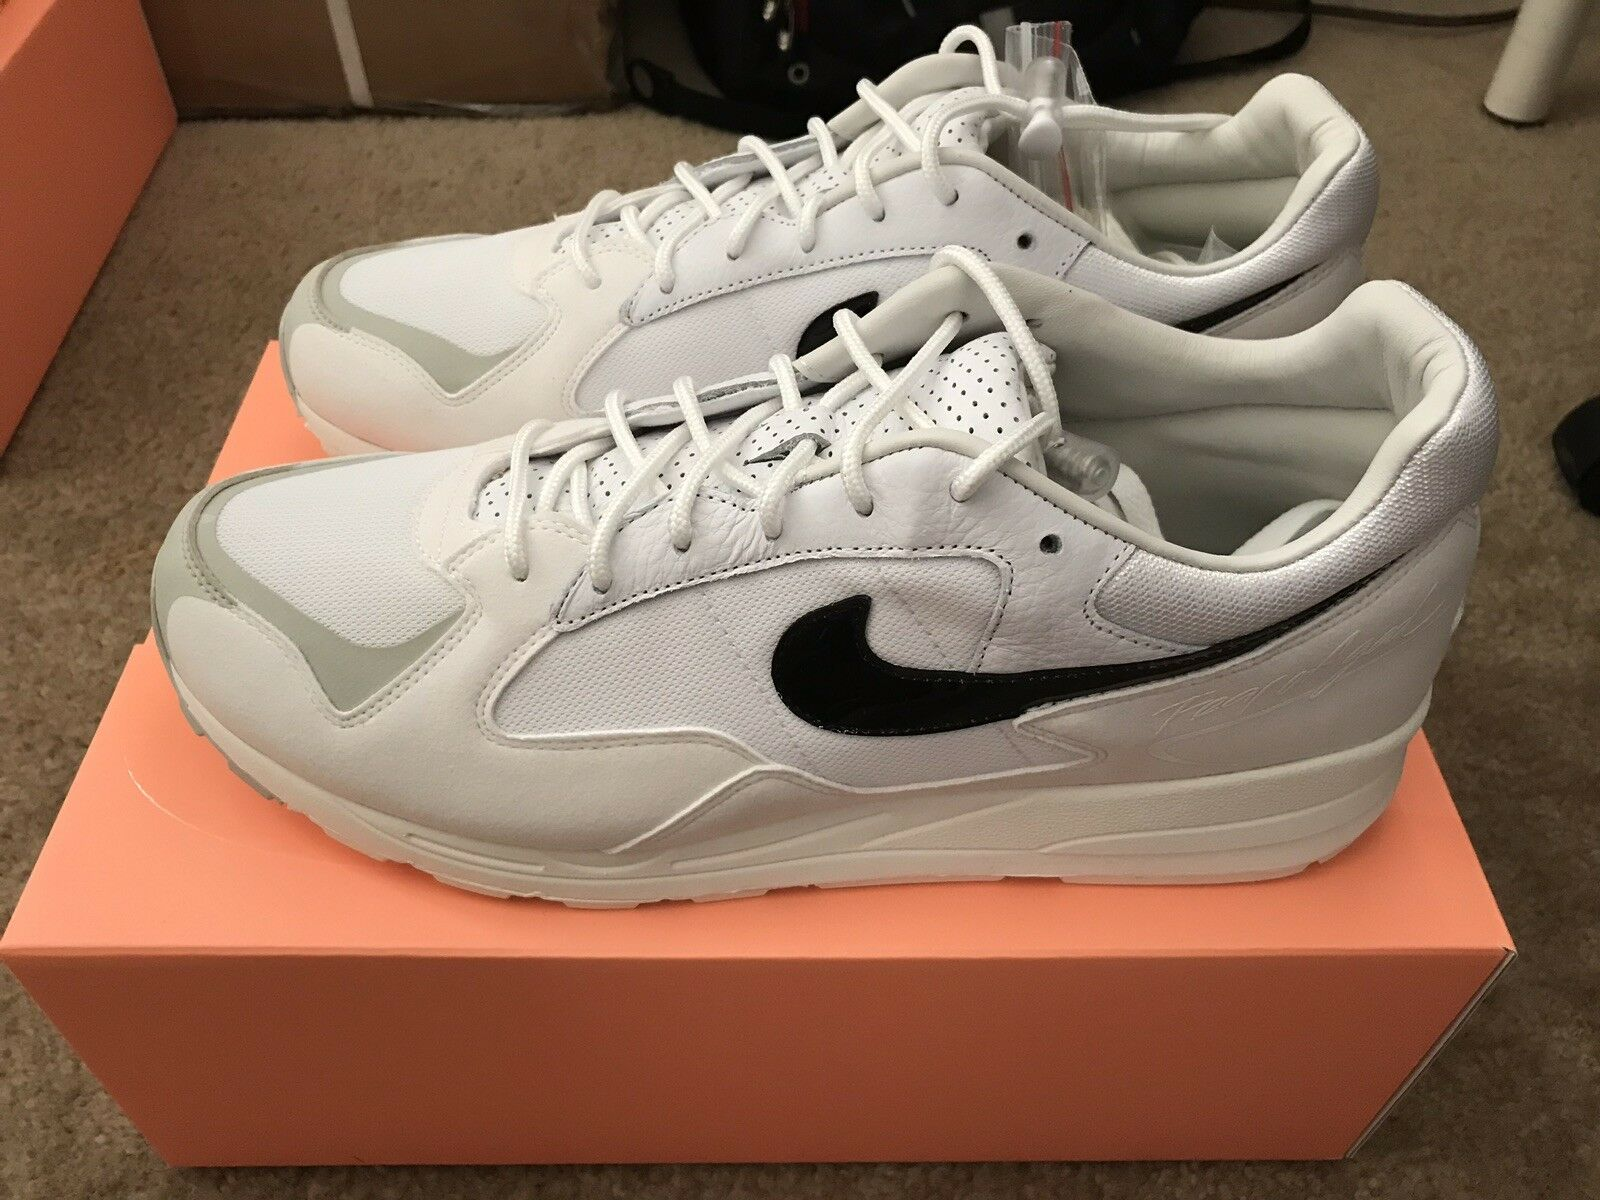 Nike Air Skylon 2 Two Two Two Fear of God White Size 13 89b72e